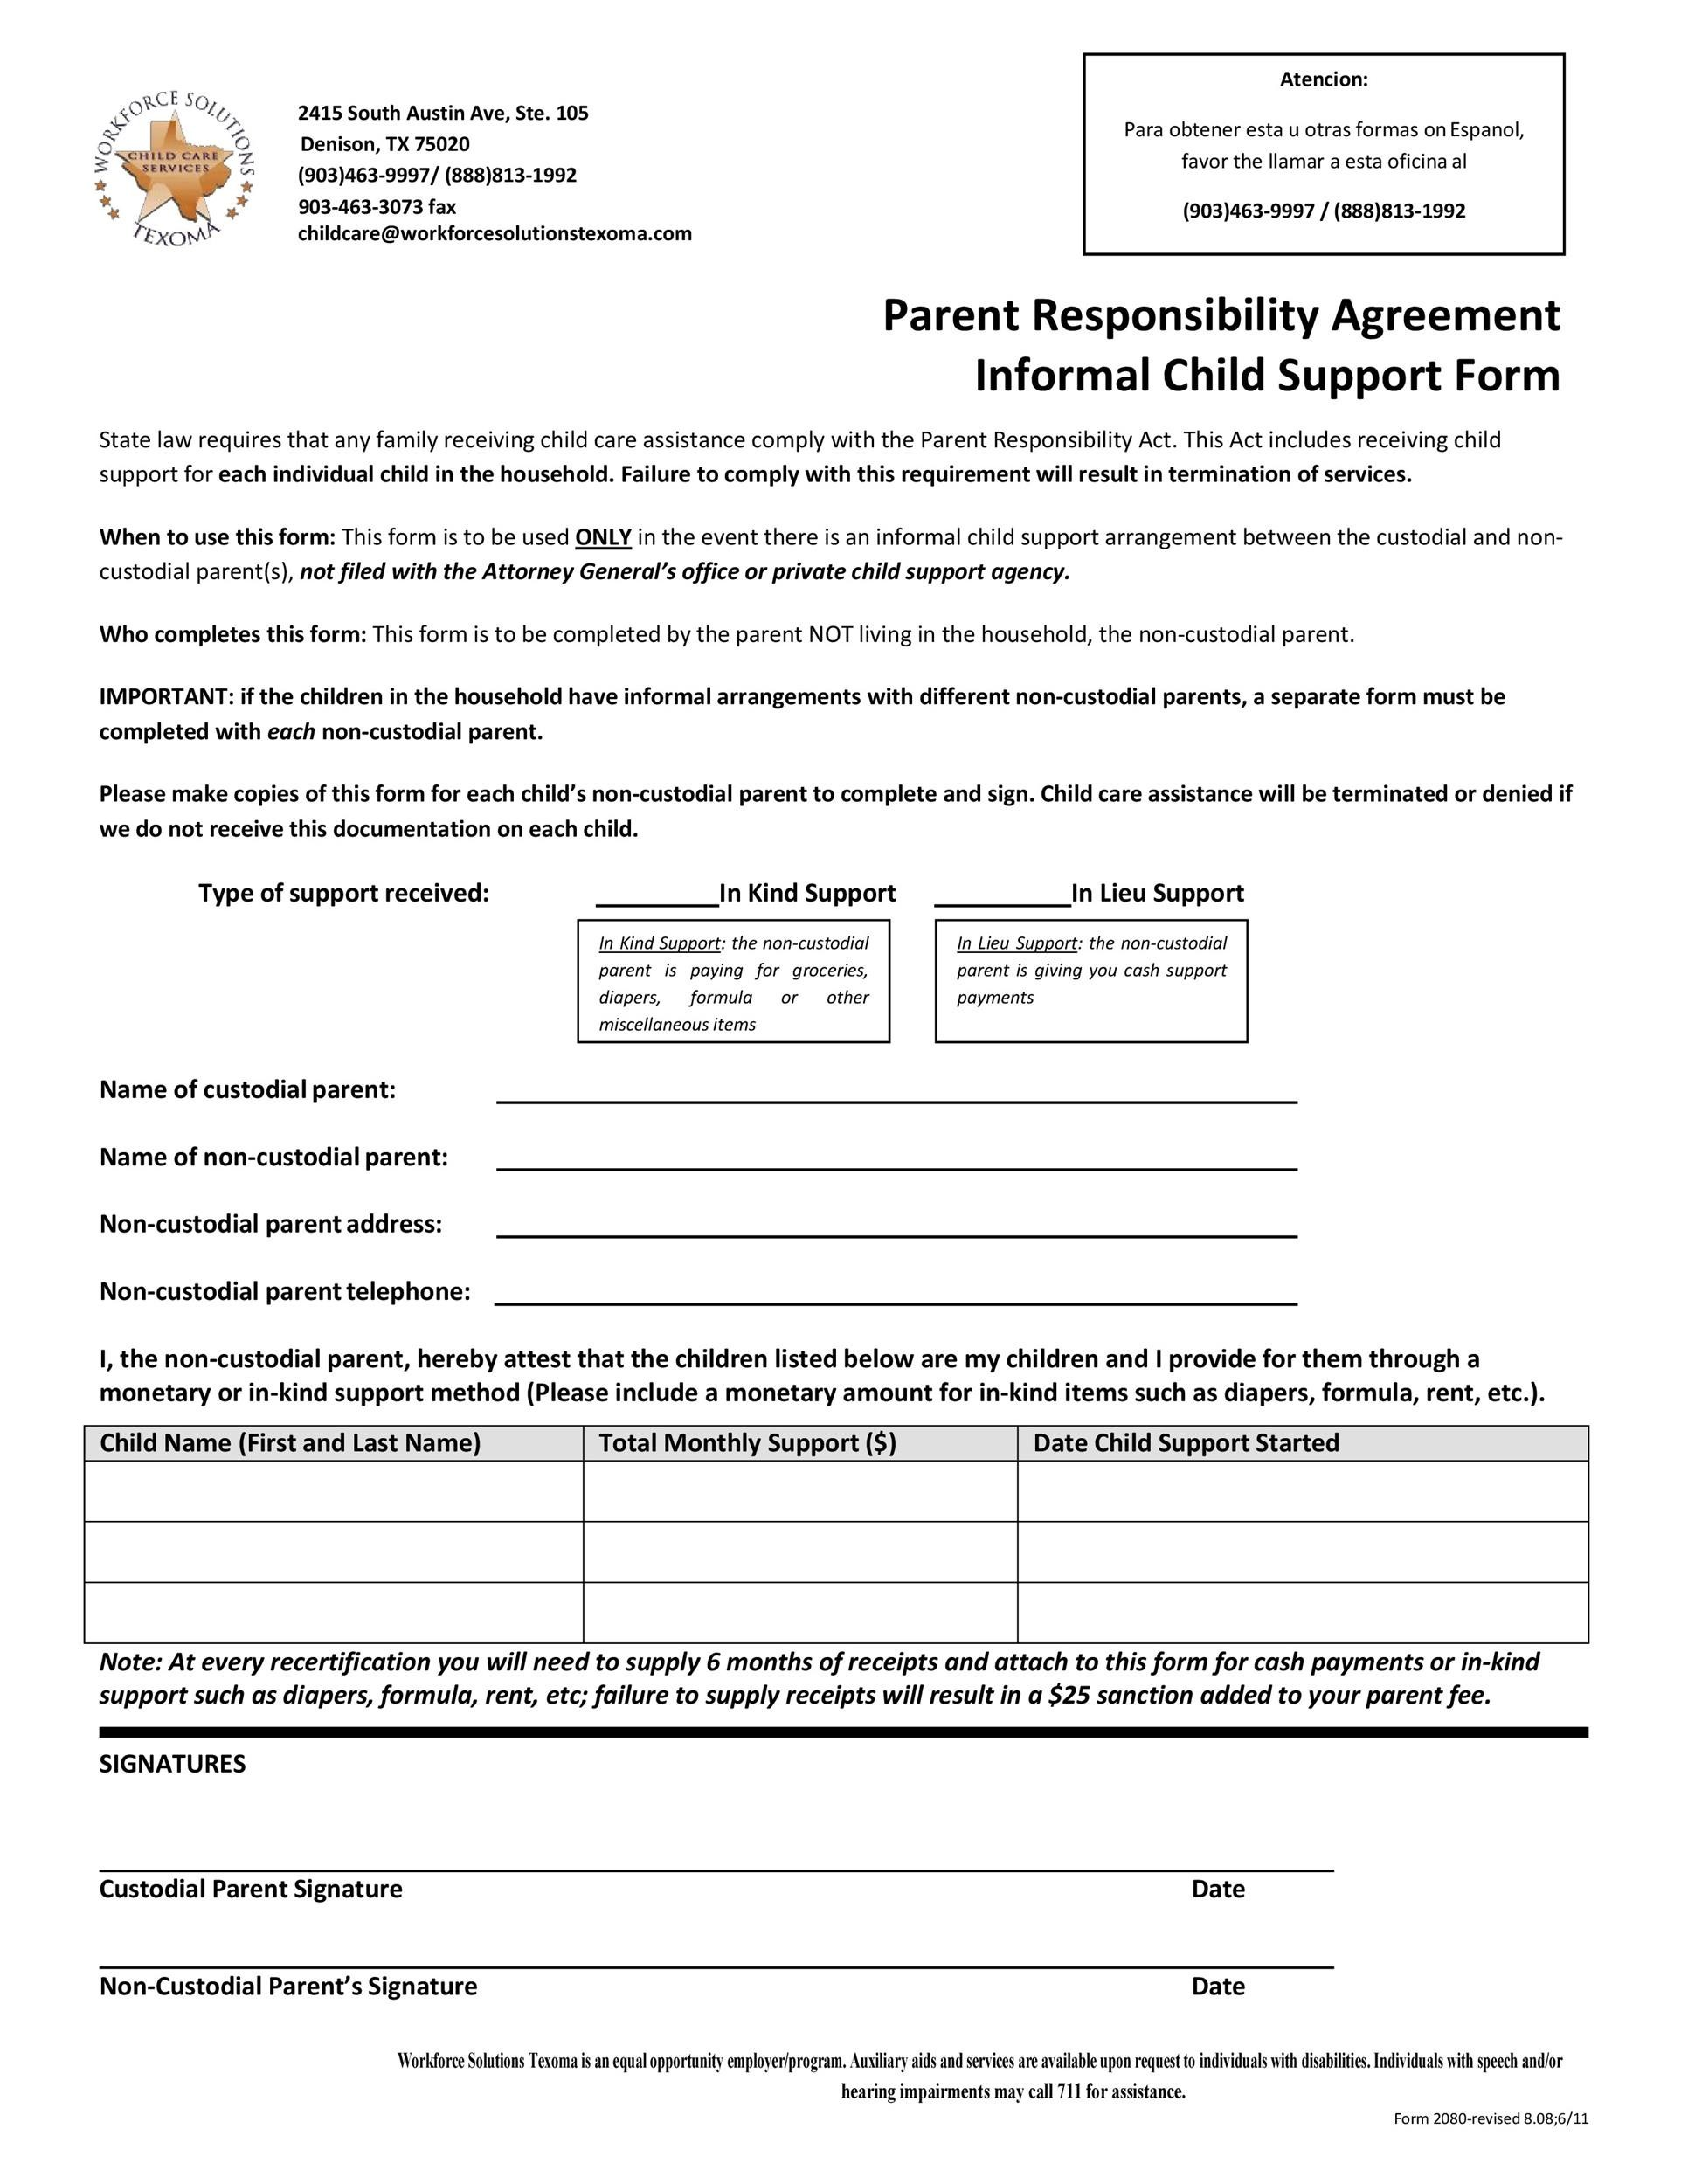 Free child support agreement 06